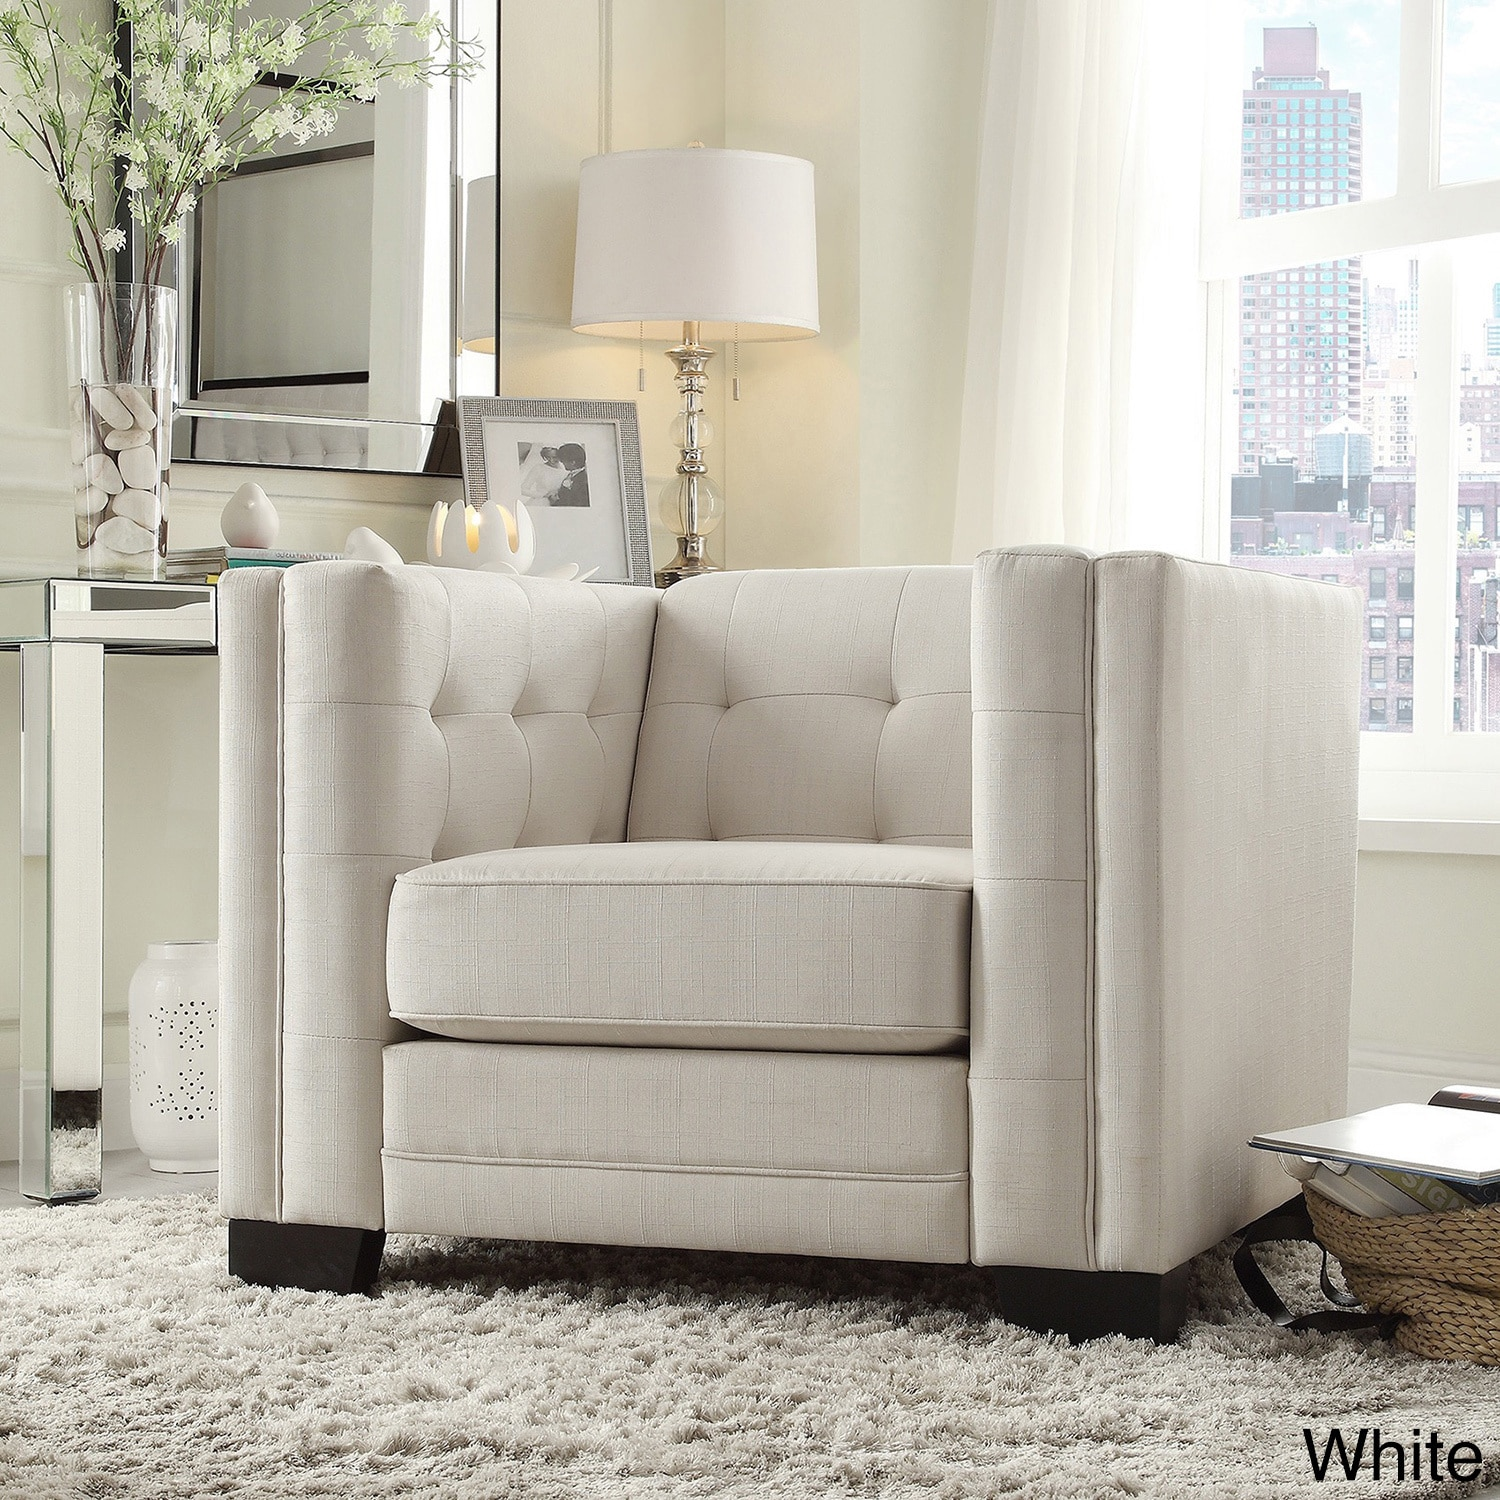 Hamilton Linen Button-tufted Accent Chair by iNSPIRE Q Bold - Free Shipping  Today - Overstock.com - 16588548